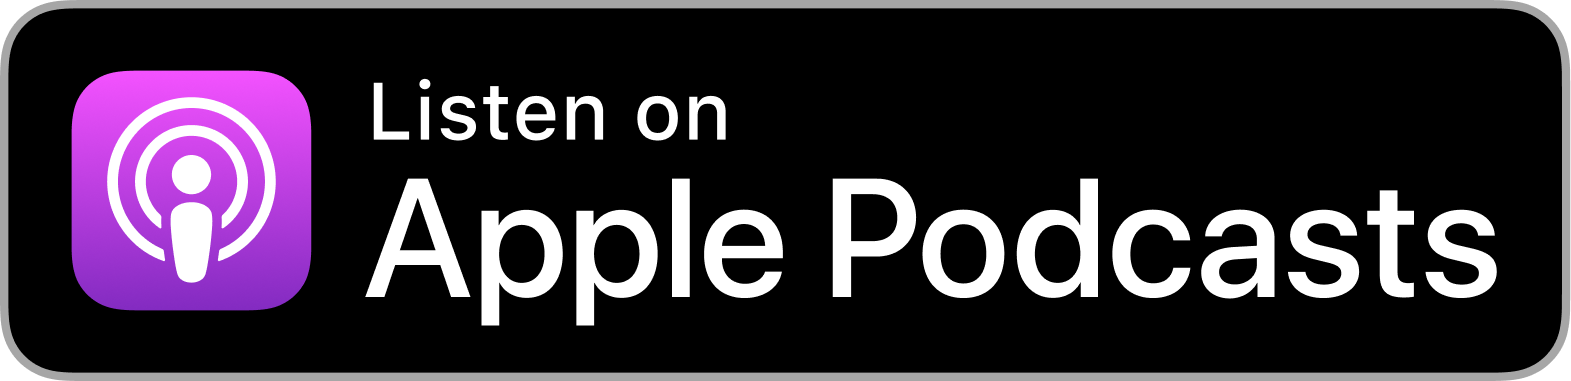 Listed on Apple Podcasts